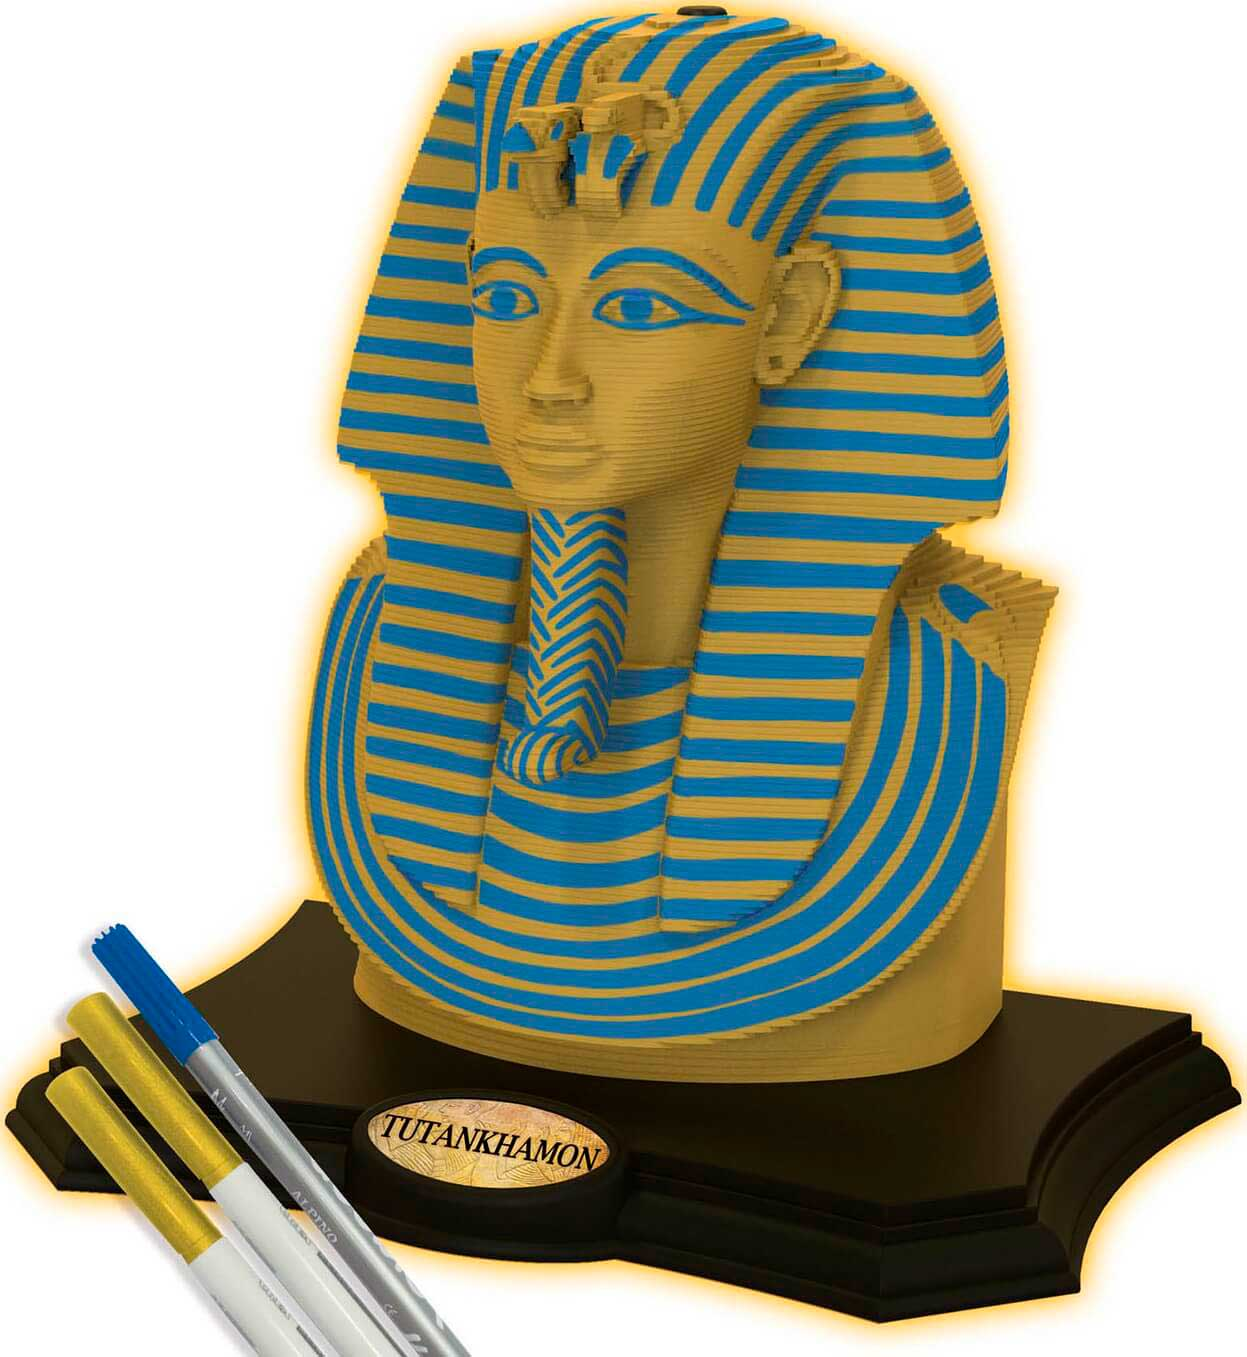 Puzzle 3D Sculpture Color Tutankhamon de 160 Piezas